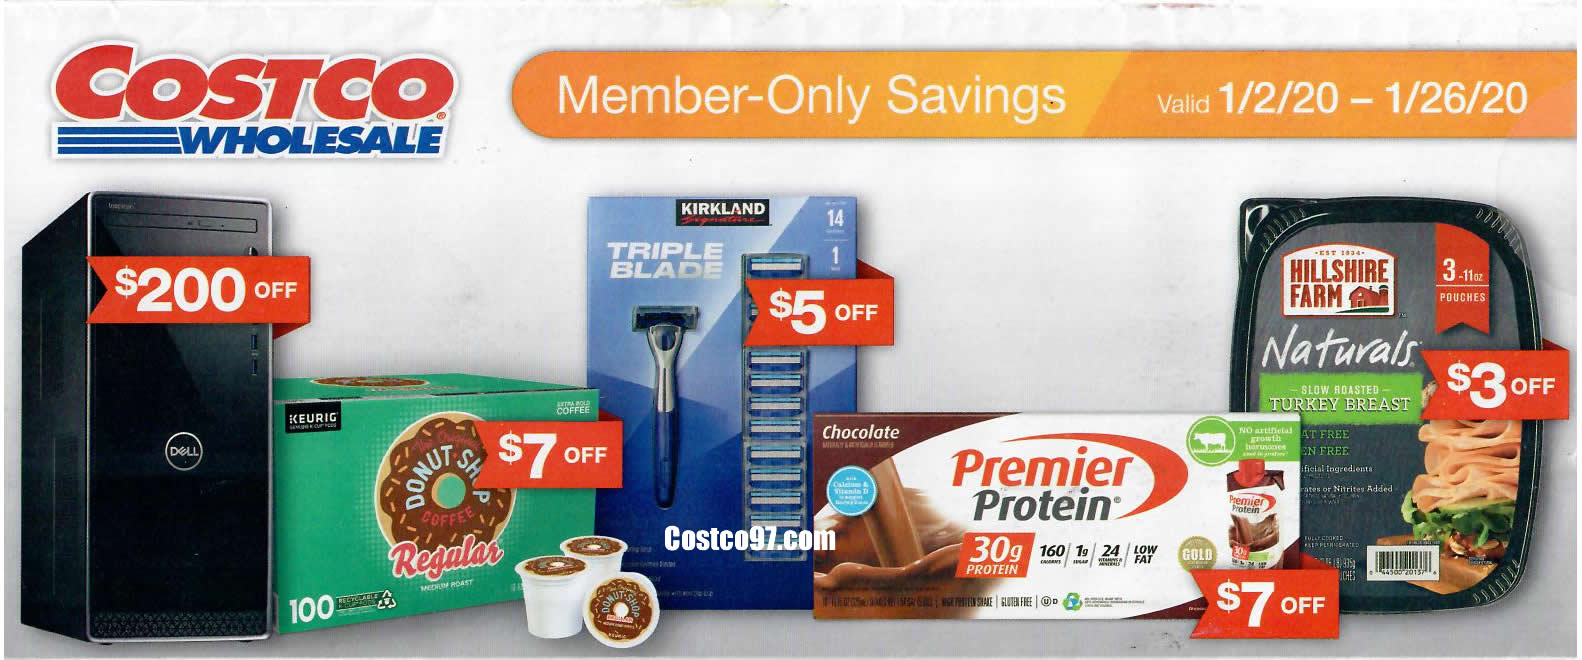 Costco-January-2020-Coupon-Book-Cover